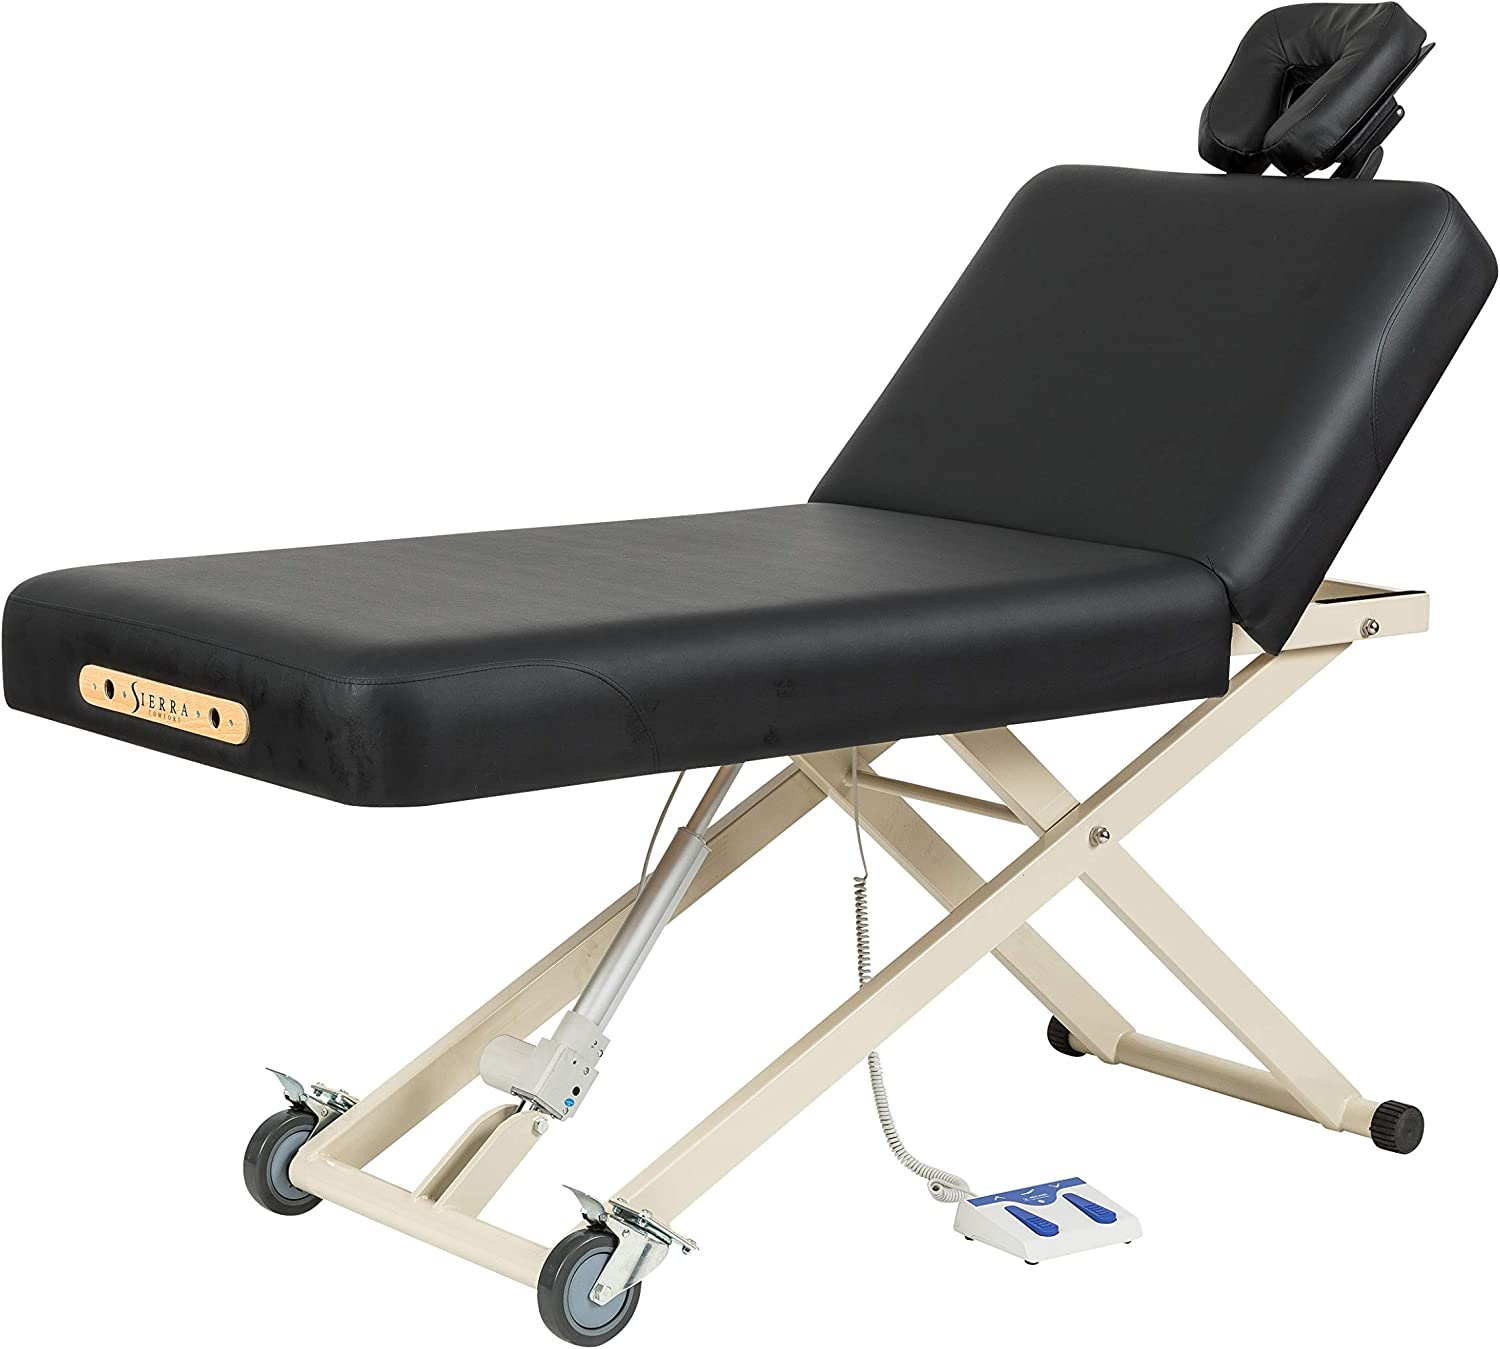 SierraComfort Adjustable Back Rest Electric Lift Massage Table, Black